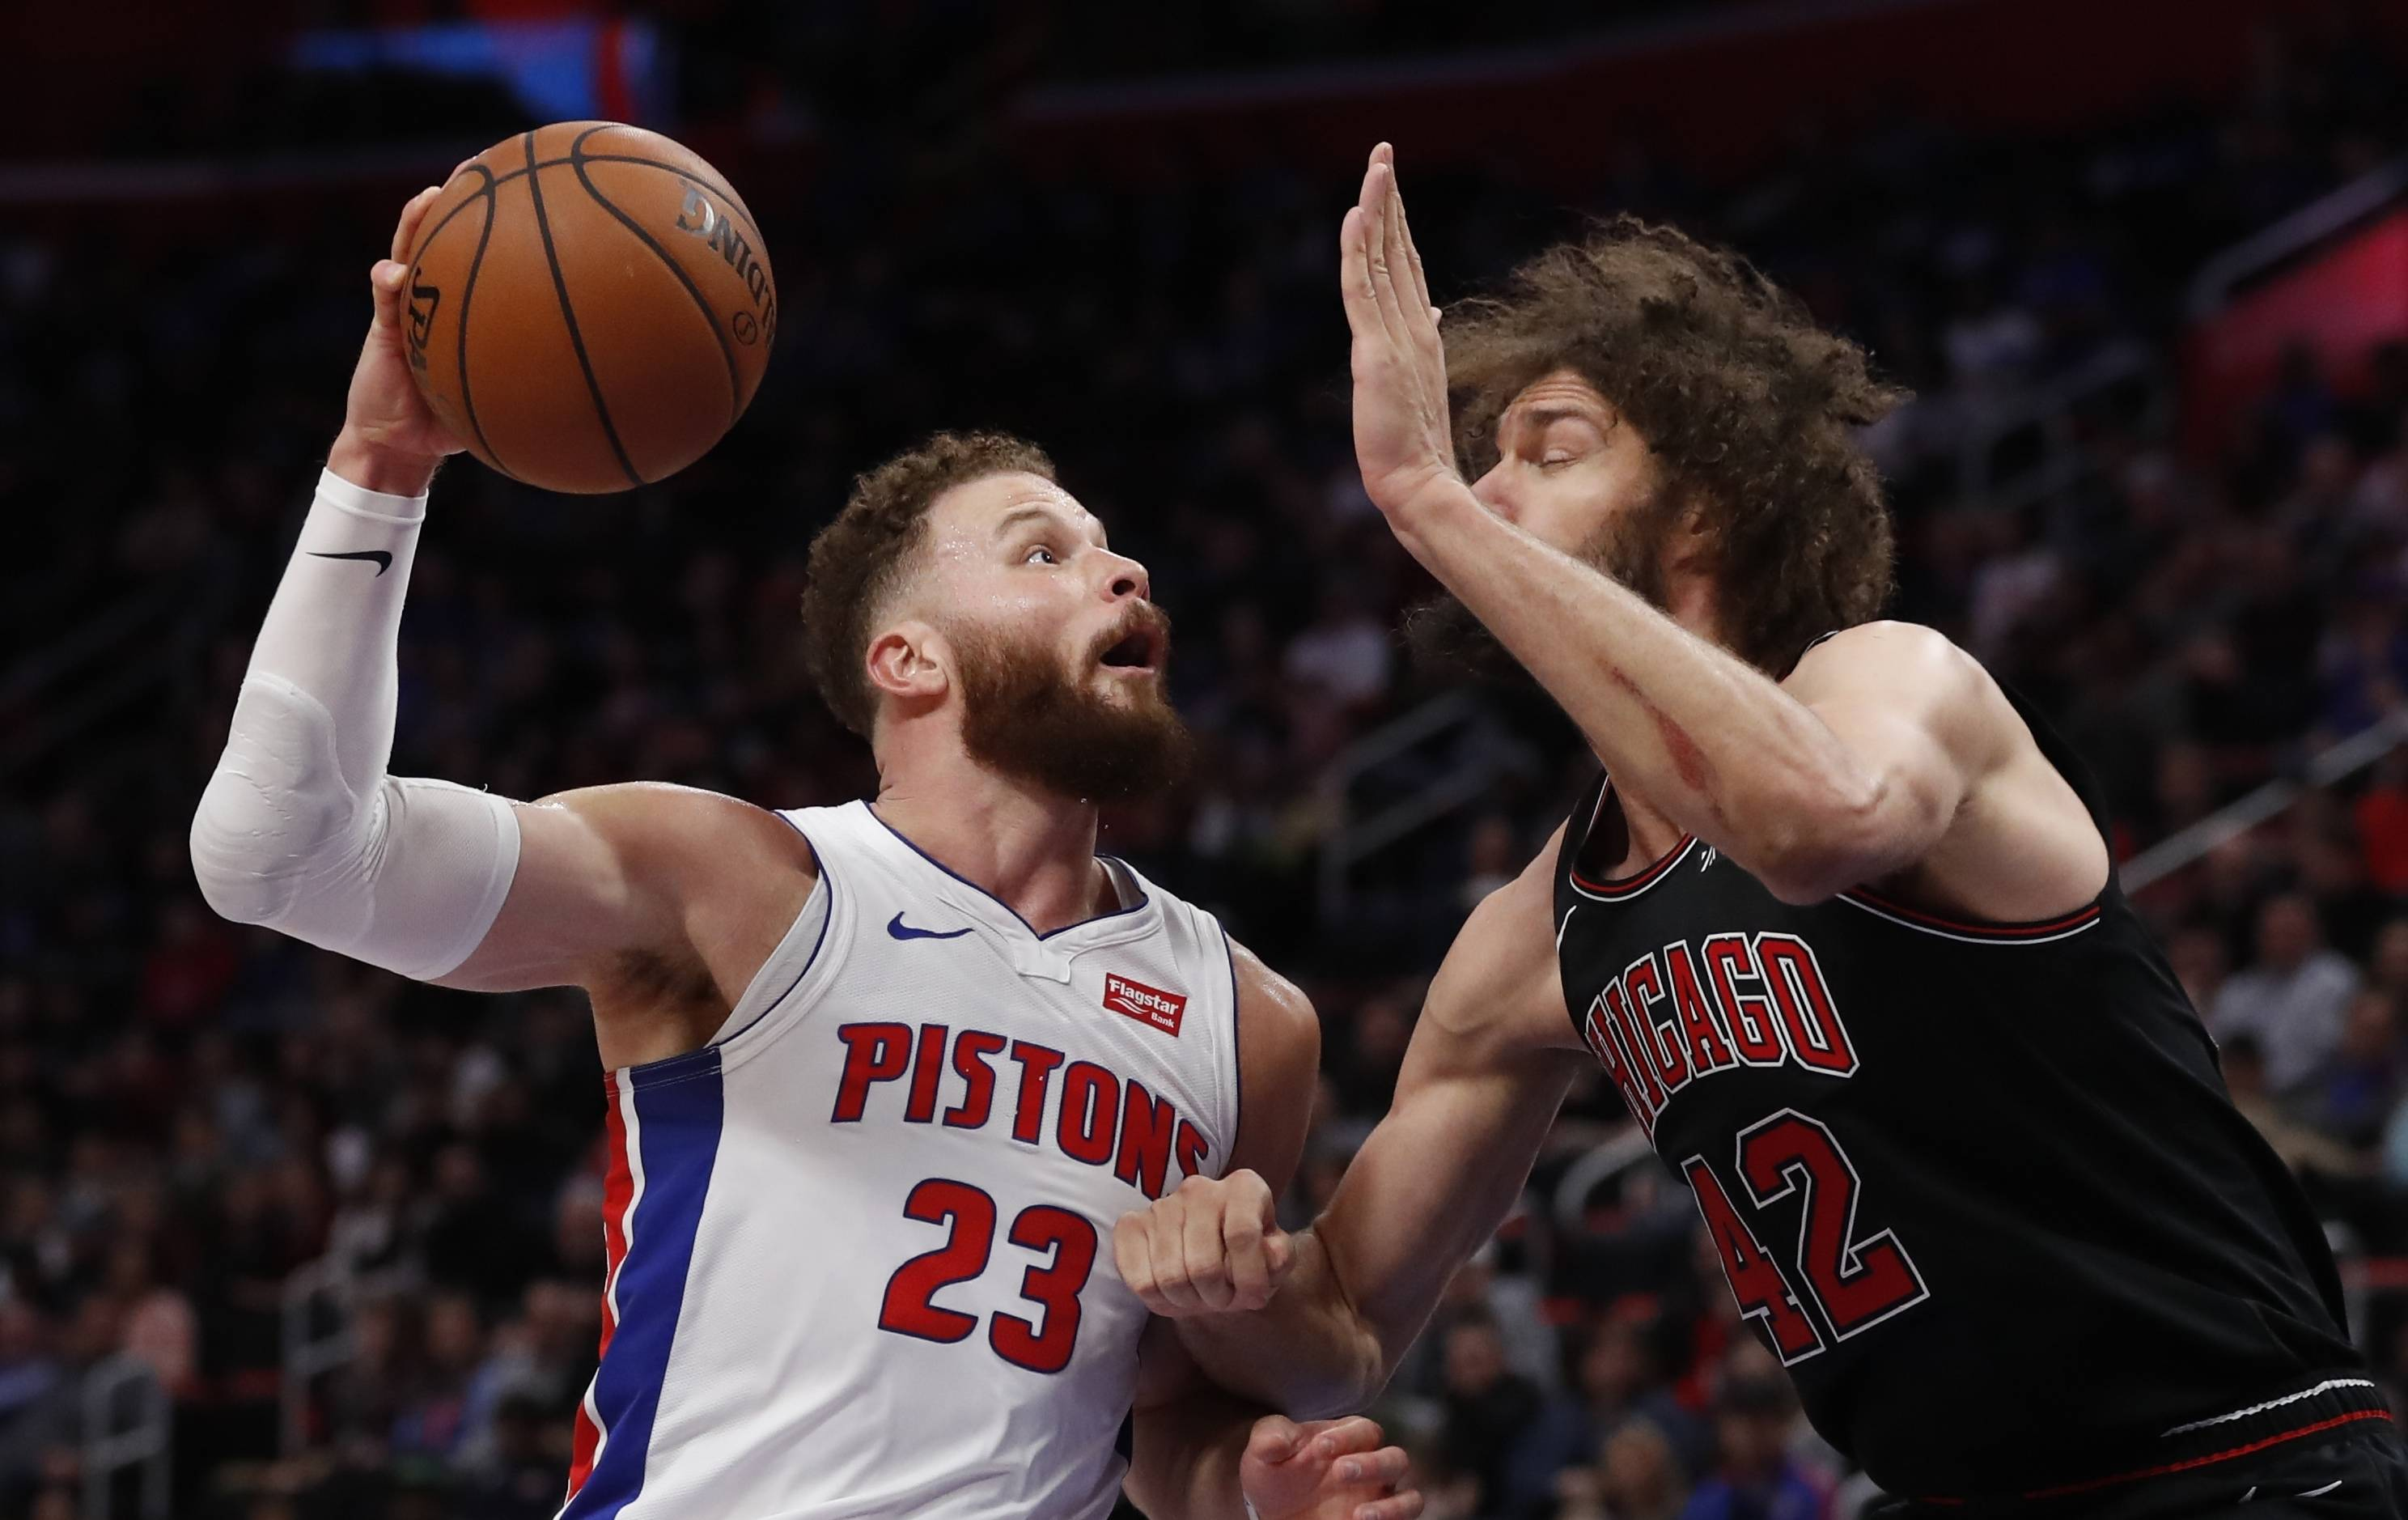 Without LaVine, Bulls can't stay with Pistons